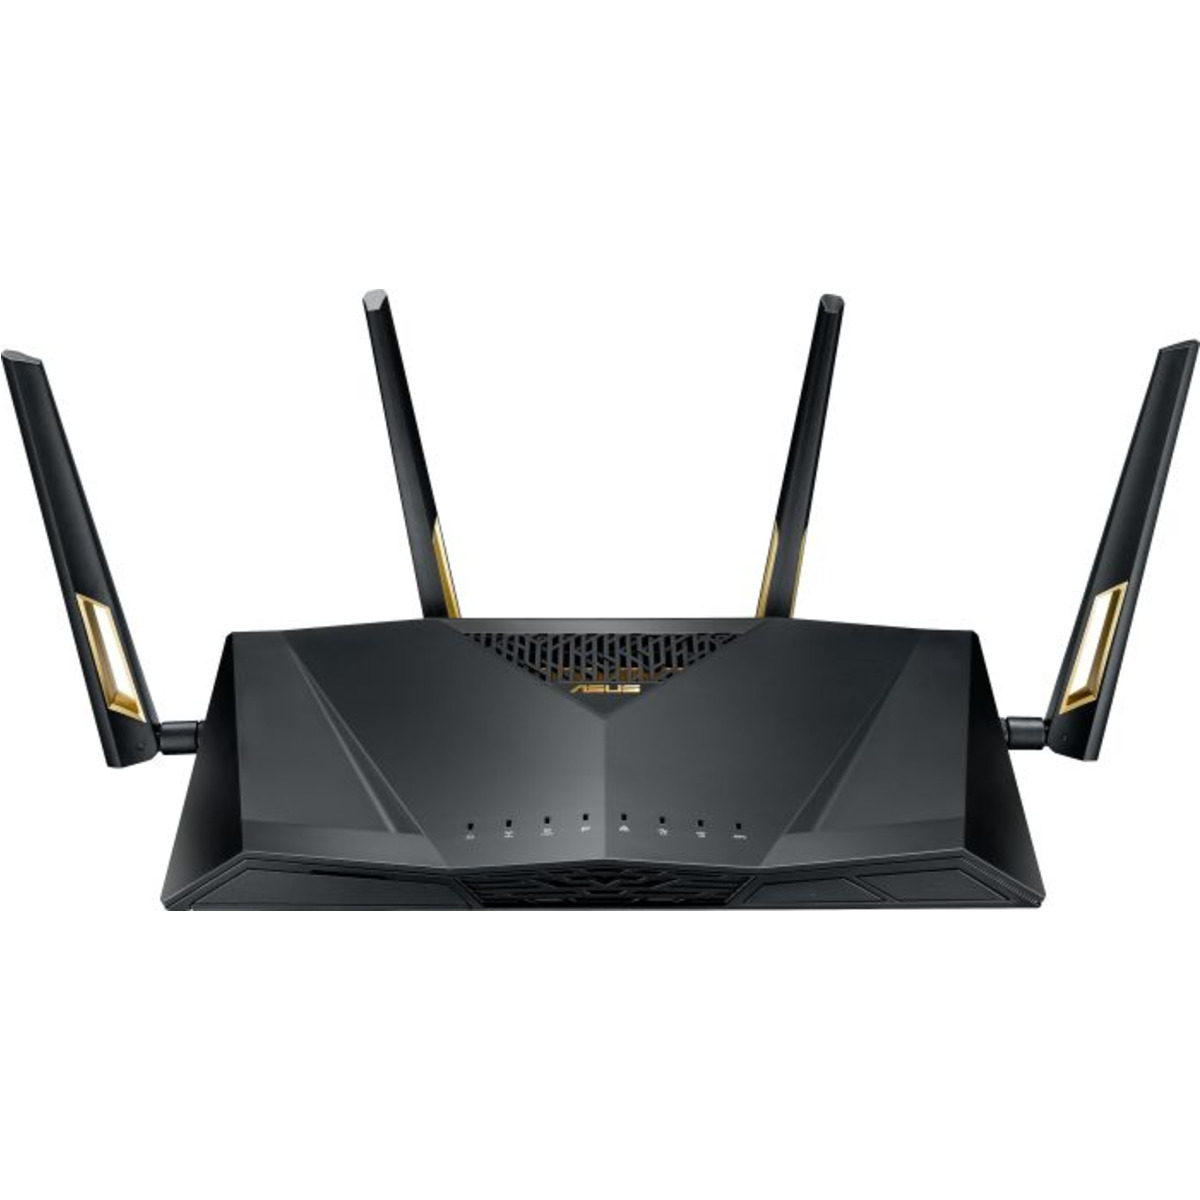 4718017128759-asus-rt-ax88u-router-wireless-dual-band-2-4-ghz-5-ghz-3g-4g-nero